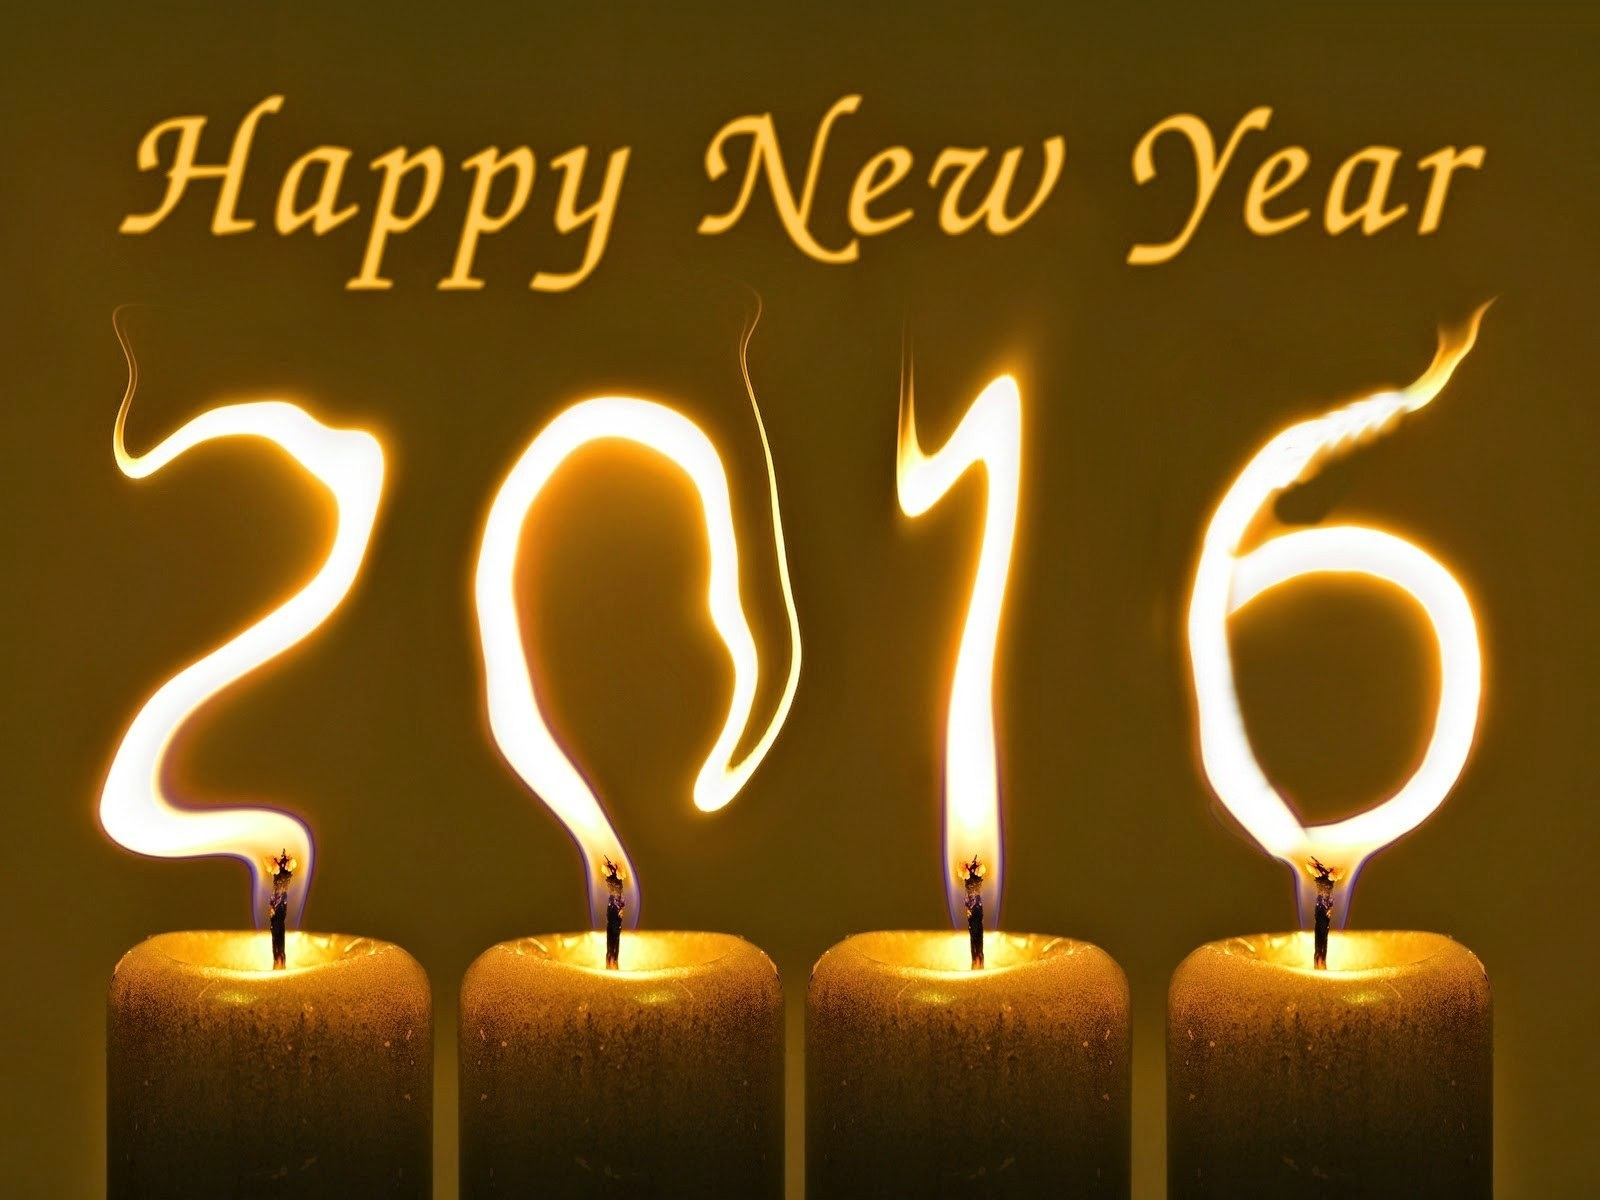 http://3.bp.blogspot.com/-Ke-9p93y_2k/VlYyv-m90GI/AAAAAAAAFM0/Z1_eNLBJk84/s1600/Happy-New-Year-2016-wallpapers.jpg